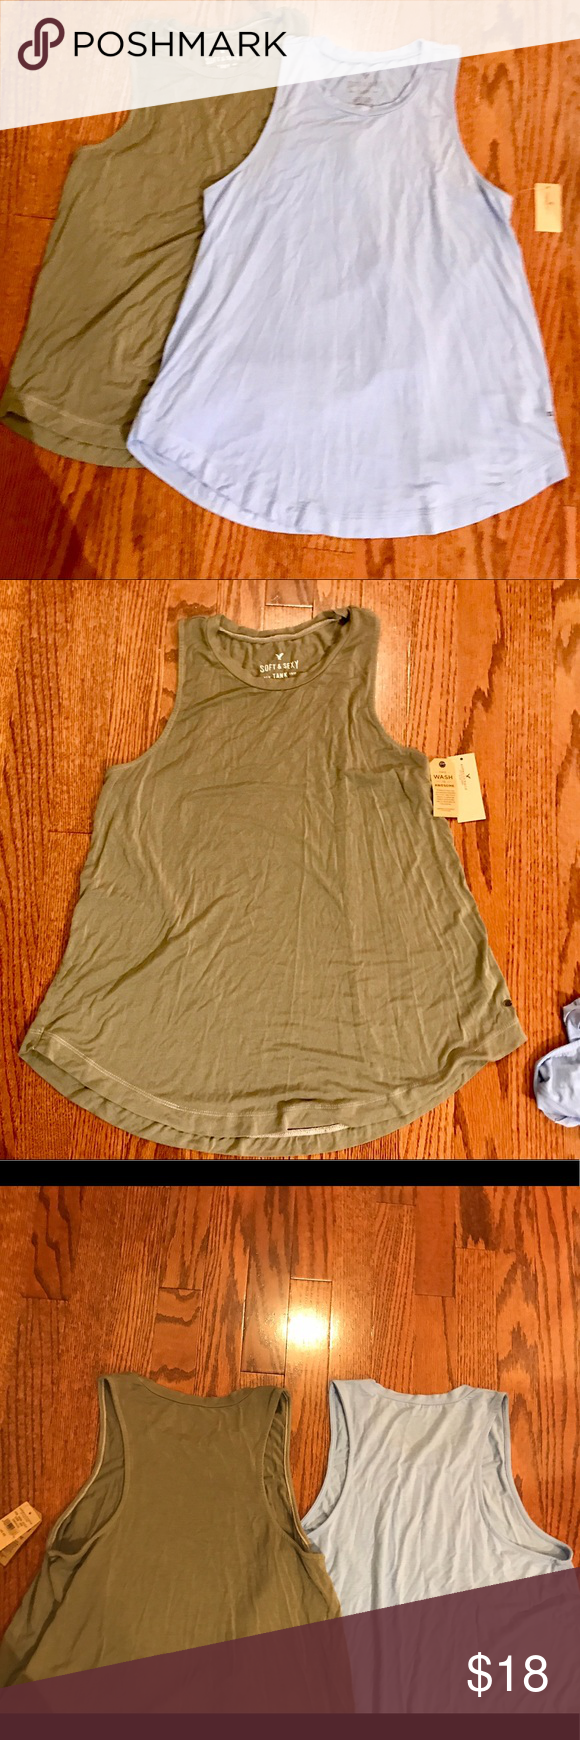 """2 AEO Soft & Sexy Tank Tunics green & blue Sz XS Both new with tags - size extra small - a line shape-  25"""" long American Eagle Outfitters Tops Tank Tops"""